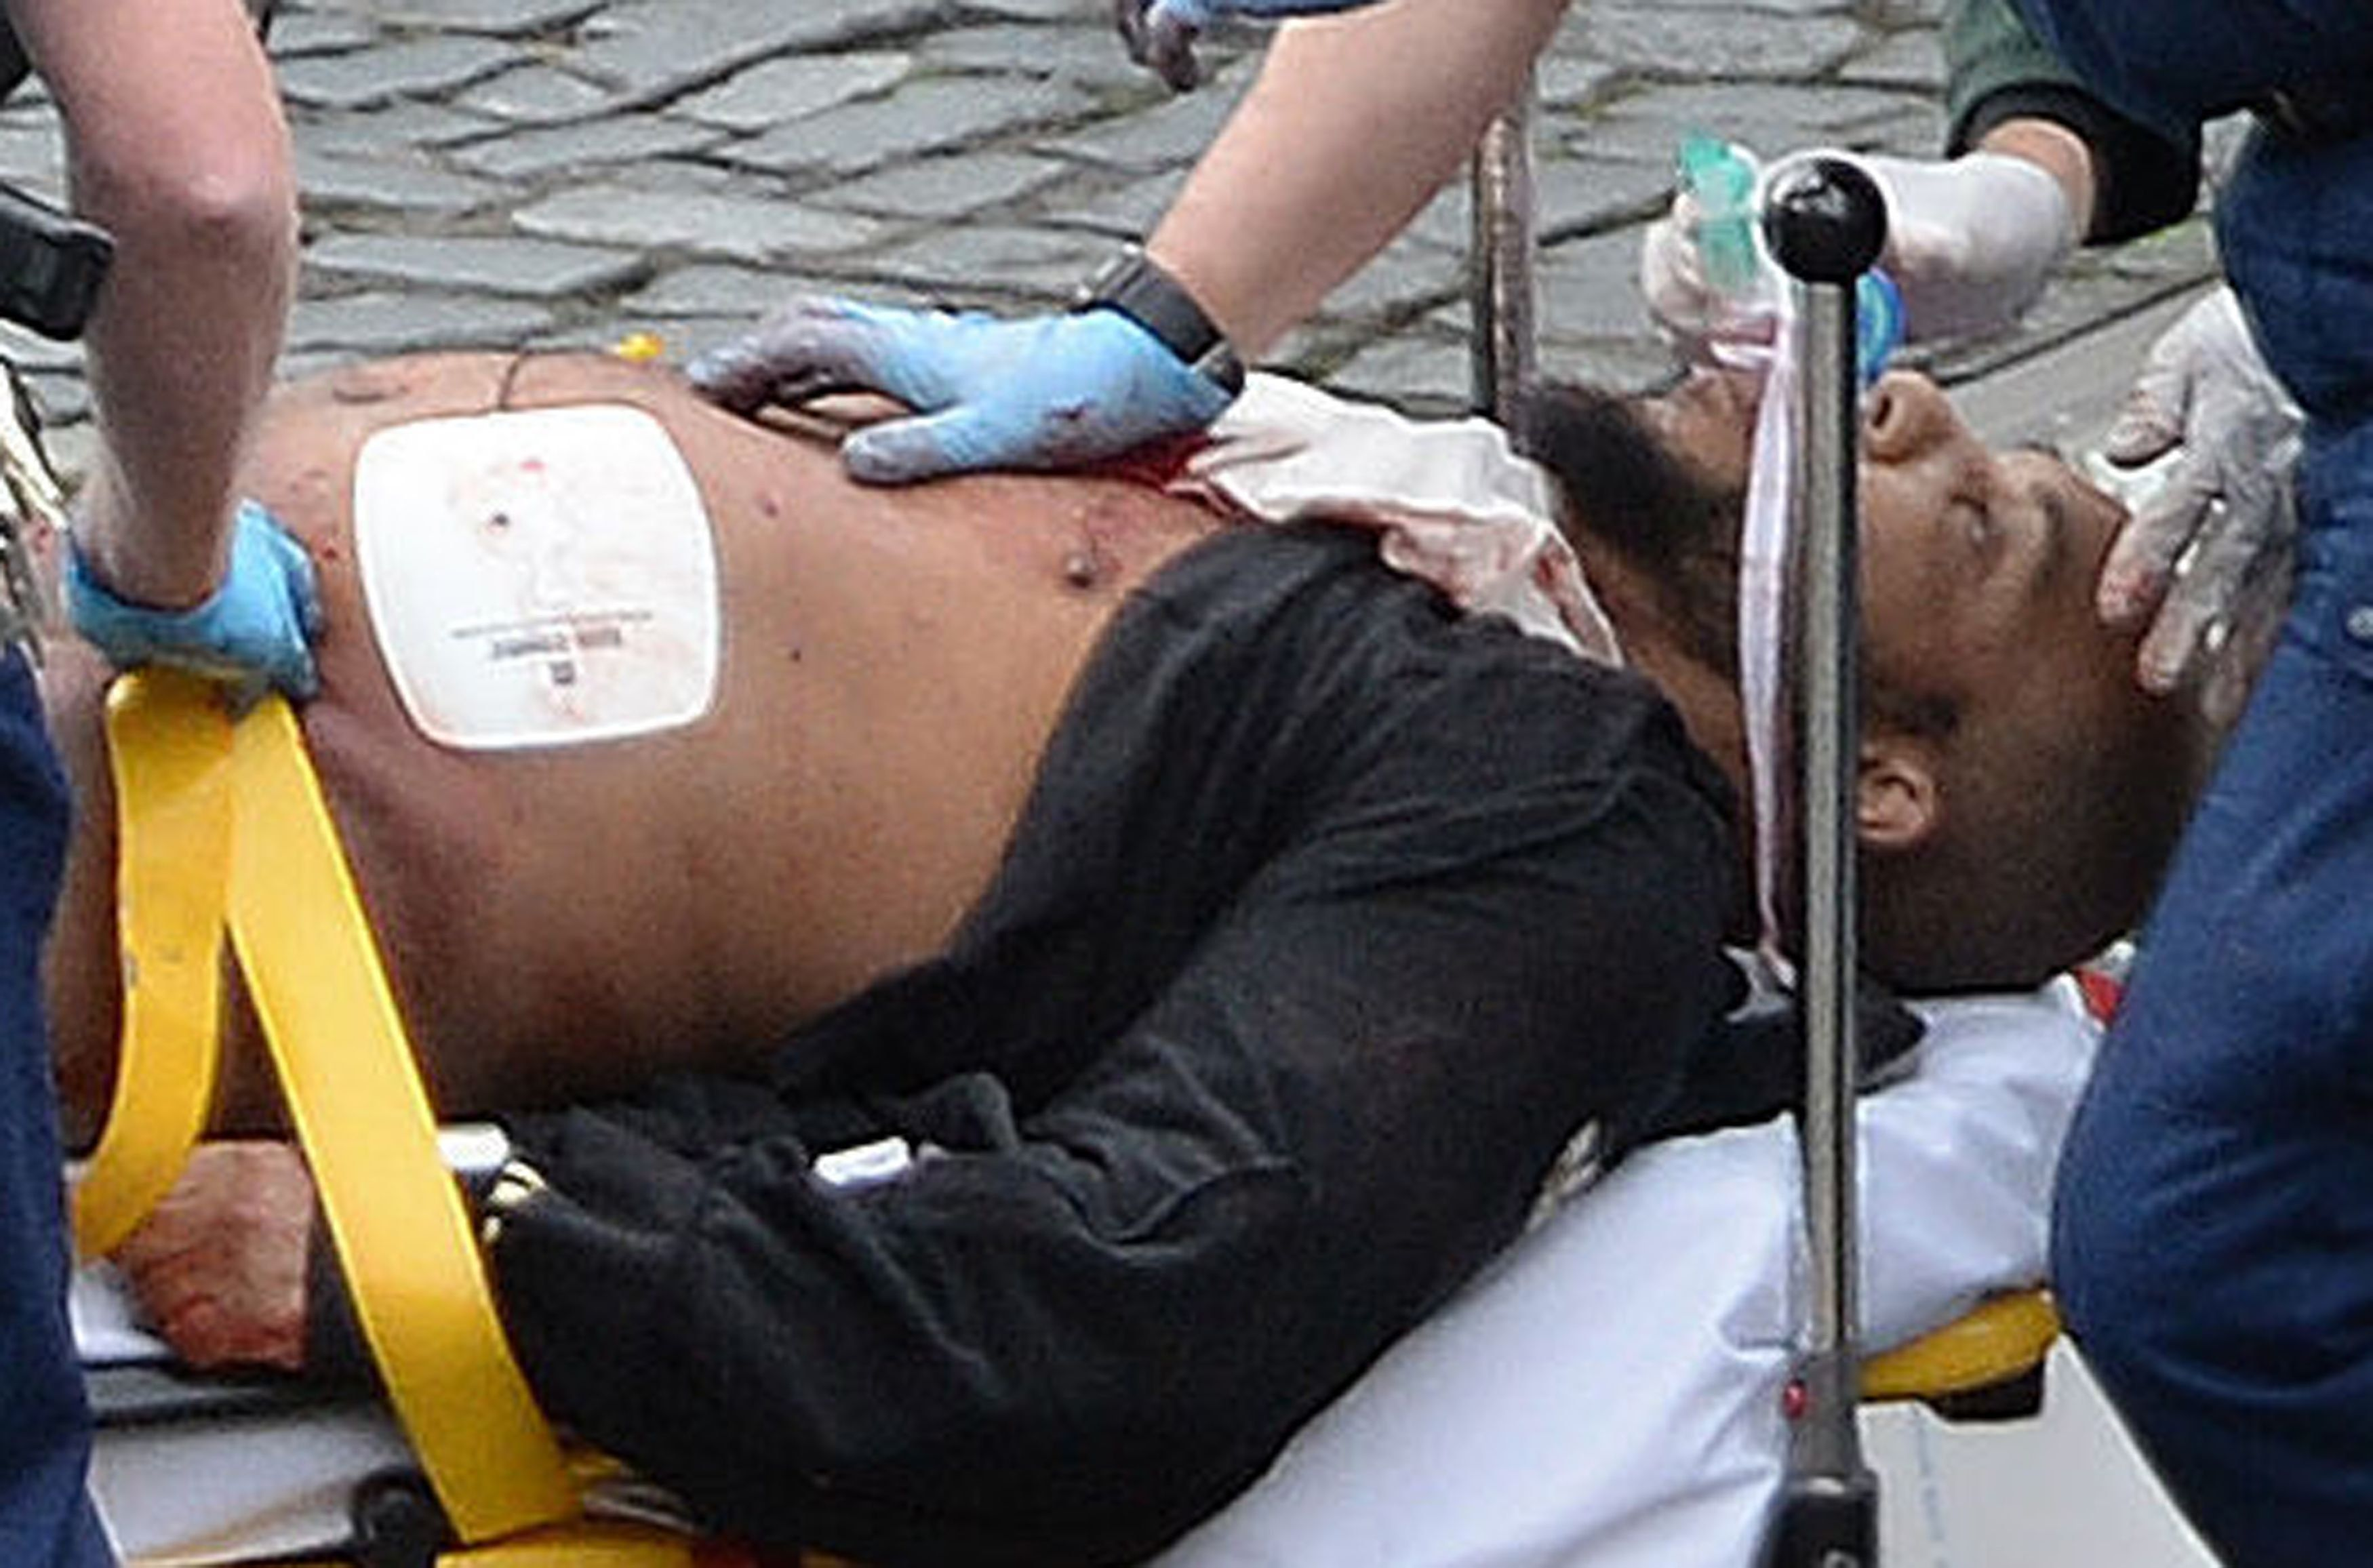 The suspect, since identified as Khalid Masood, is taken away on a stretcher following the